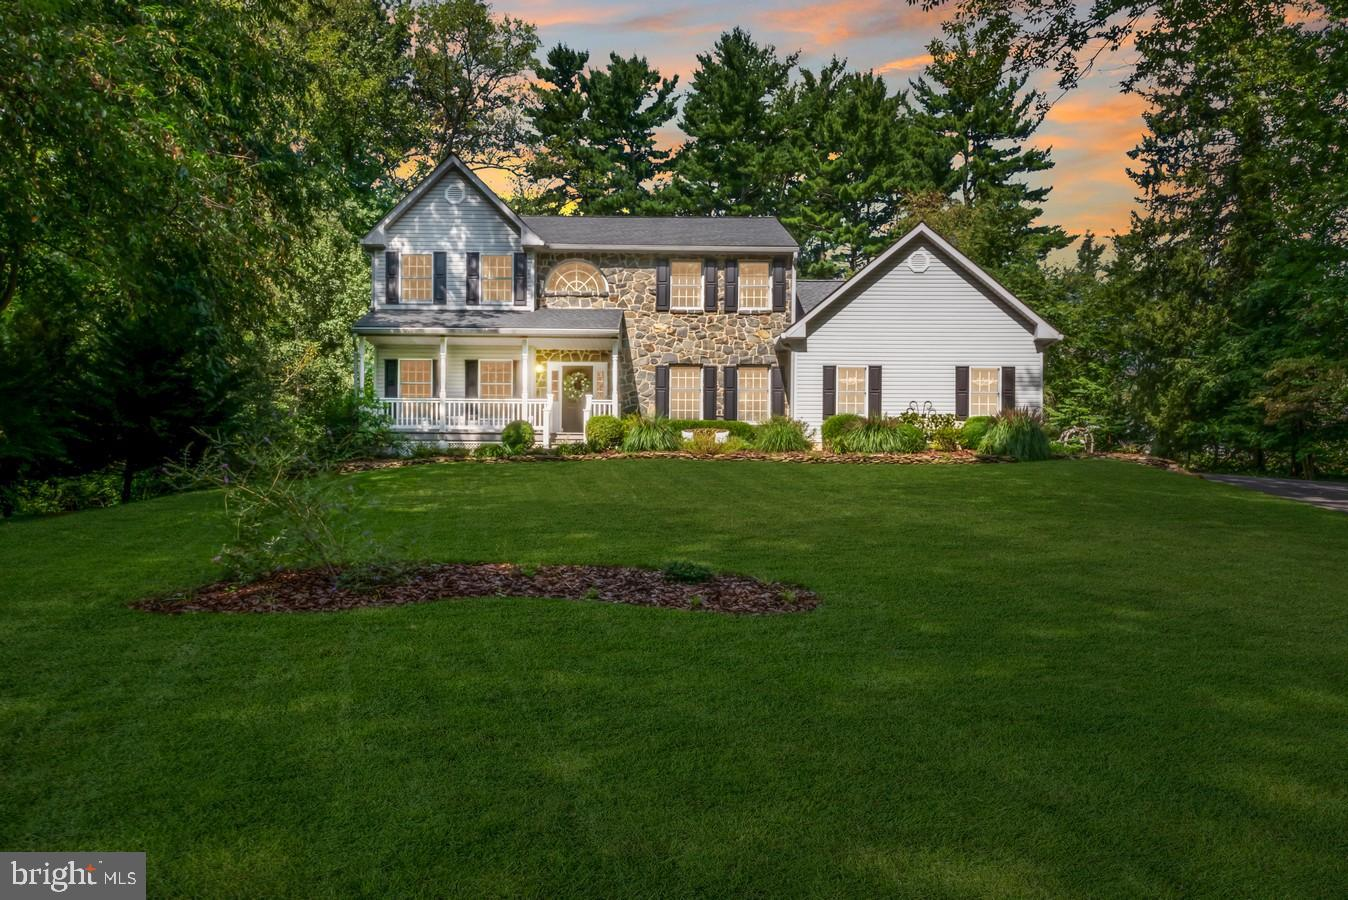 A stunner on Spring Lake Ave.! Nestled on 1-acre enclave in N. Wilm. and enveloped in aura of tree-lined privacy, this 4BRs/2 ½ bath stately stone/gray siding home with outdoor oasis is magnificently perched on gently sloping, landscaped lawn with winding driveway, and touts all-around appeal. Stone-stacked beds of shrubs line stone sidewalk which leads to white railed, elevated front porch that is roomy enough for pair of chairs and exudes welcoming ambiance. Home's upgrades include new BRs carpet (2021), recently renovated kitchen, new roof (2018), new HVAC (2016) and more! Front door opens to floorplan of dramatic angles, volume ceilings, oversized entrances and open spaces, while golden polished hardwood floors ground this dramatically designed home. Foyer features striking dual turned staircase, textured neutral-colored walls and crown molding. Beyond foyer is hall to kitchen with PR of distressed vanity with vessel sink, brushed gold hardware, new designer ceramic tile floor. 2 windows on front wall and stylish barely-there 2-tone custom painted walls of cappuccino/café au lait colors graces walls of formal LR to left of foyer, while opposite is equally impressive DR that boasts bronze wrought iron chandelier and matching windows and same custom painted walls, creating balance across front of home. Short hall off DR has closets on both sides and leads back to hub-of-home and heart-of-every gathering! Expansive and elegant hardwood floored kitchen is seamlessly linked to FR and stretches across back of home and together rooms echo openness and brightness of front of home. Gorgeous quartz countertops and farmhouse sink are favorably fused with creamy linen-colored cabinets with glass hardware/glass front upper cabinets with under cabinet lights. Subway tile backsplash with diamond accents is paired with sleek SS appliances. Center island with bar stools is highlighted by trio of pendant lights and offers comfortable and casual perch for dining around-the-clock. 